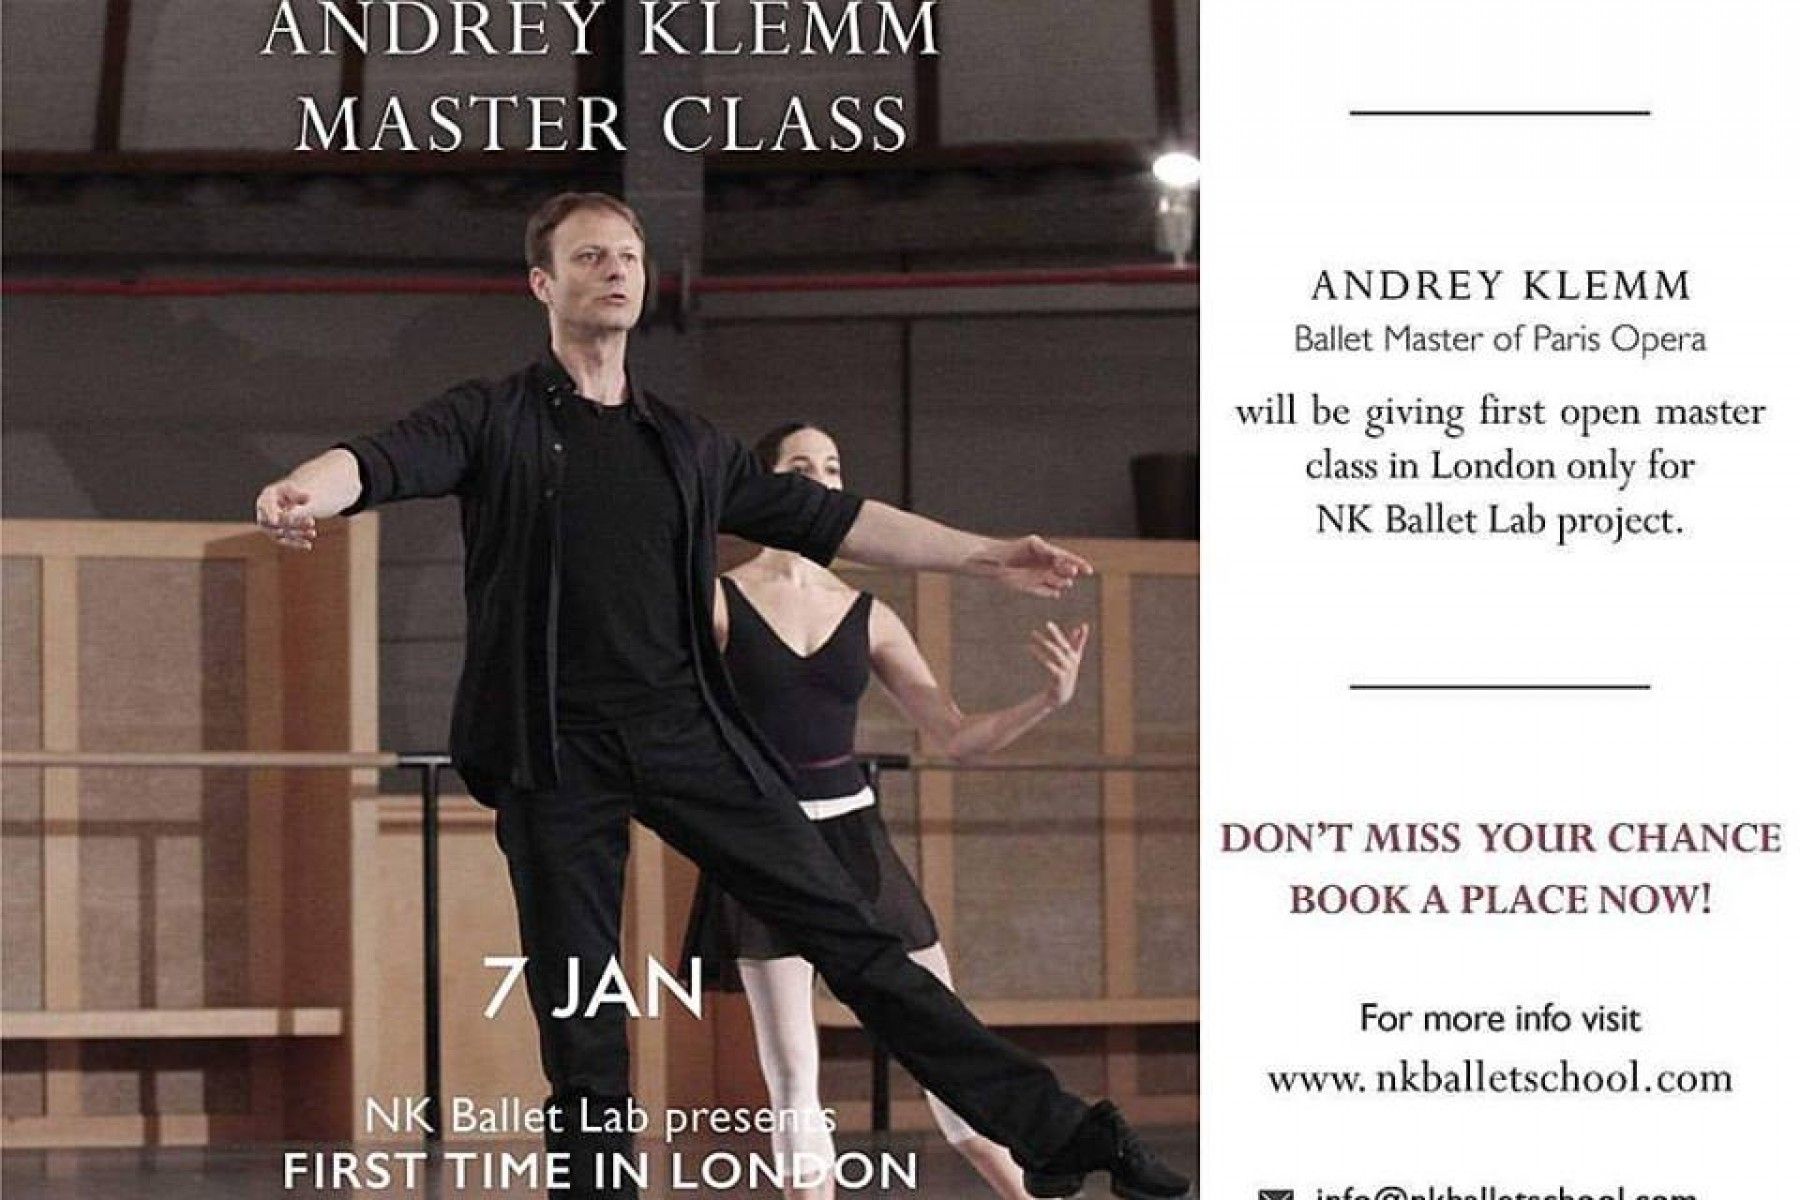 Master Class with Andret Klemm